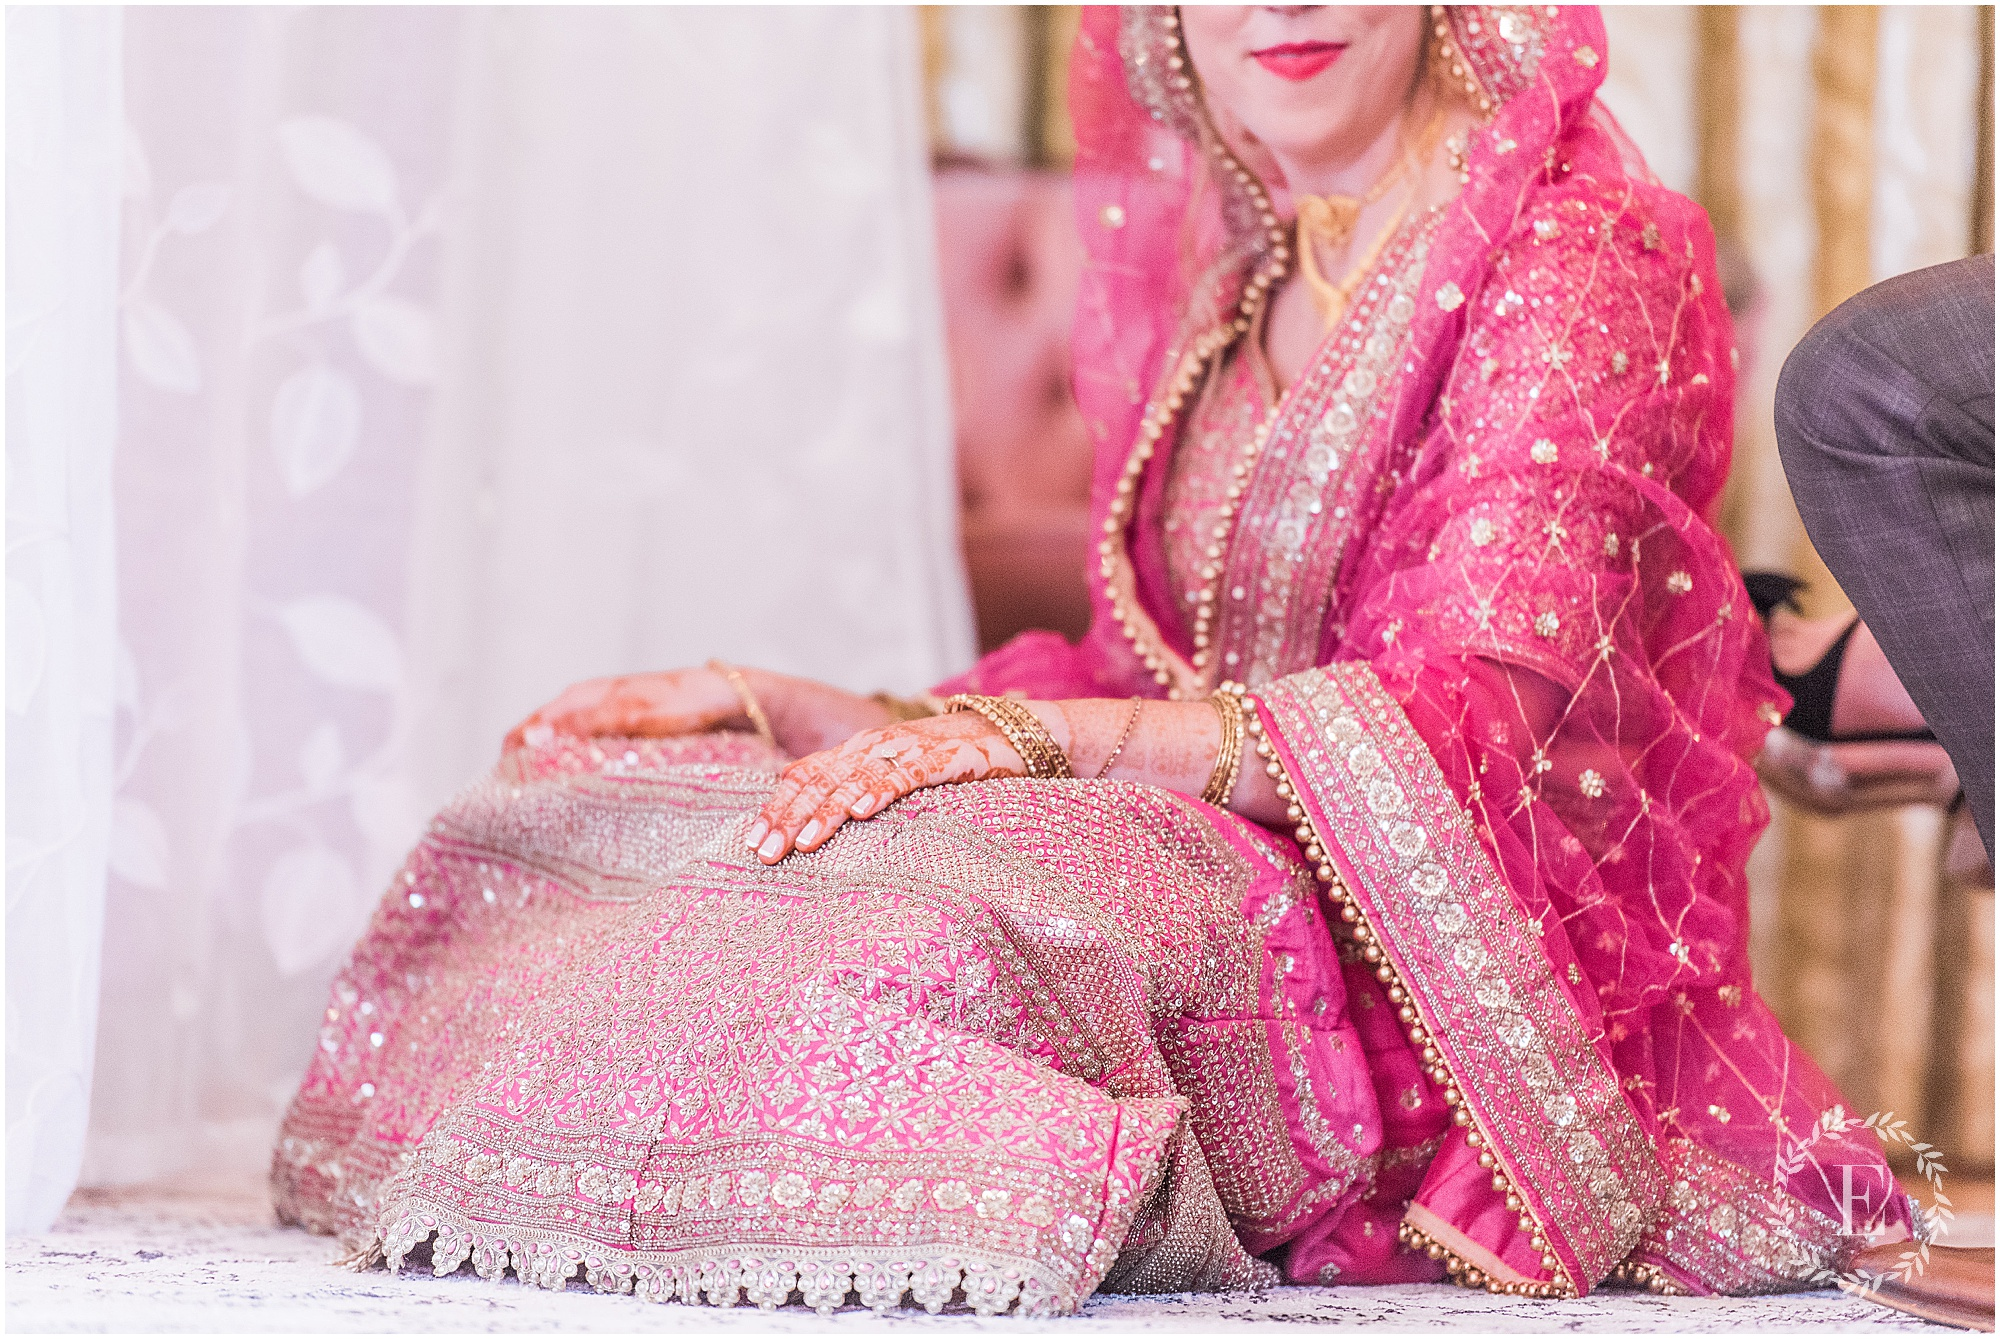 0031 Cait and Saaqib Nikah -Old Ancaster Town Hall - Photography by Emma.jpg